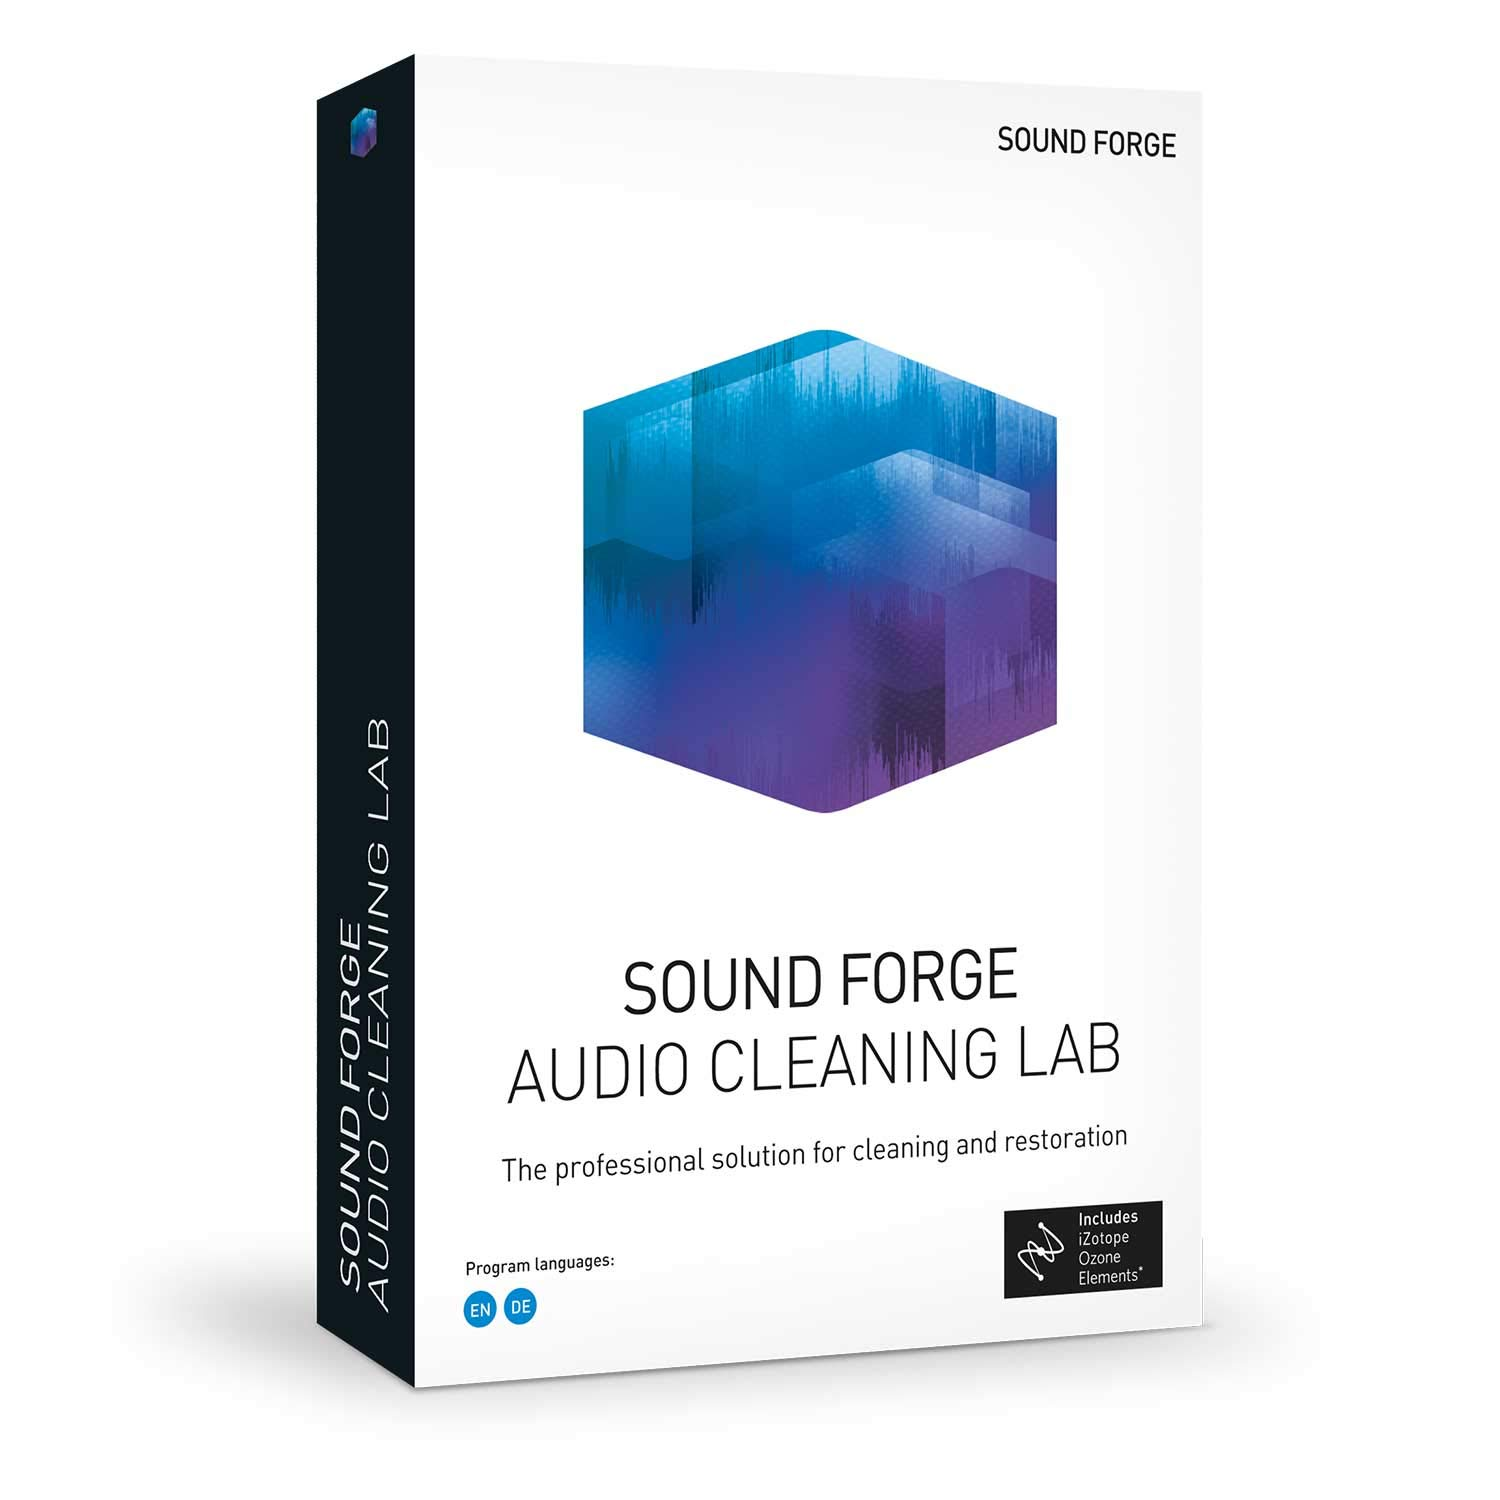 Sound Forge Audio Cleaning Lab - the Specialist Tool by Sound Forge